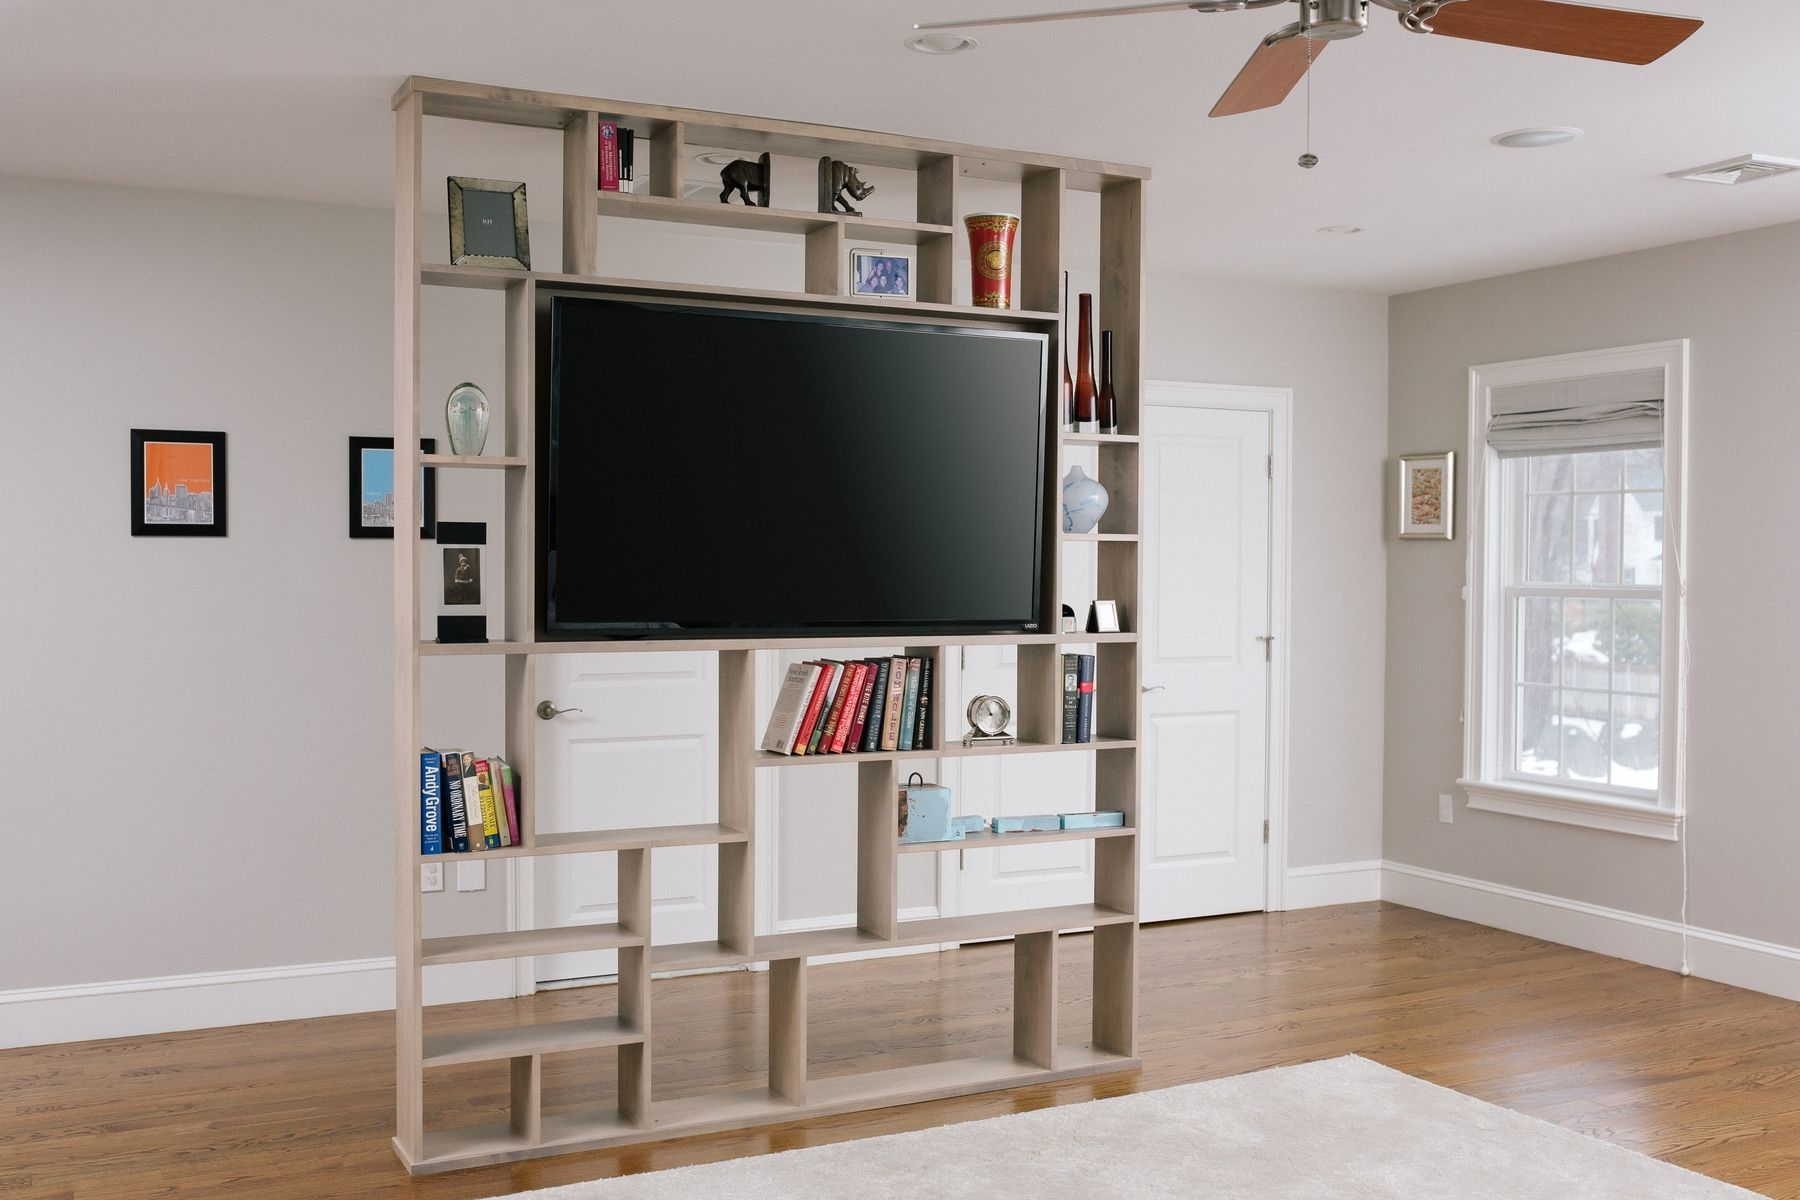 Custom Made Lexington Room Divider Bookshelf Tv Stand For Middle Of The TV